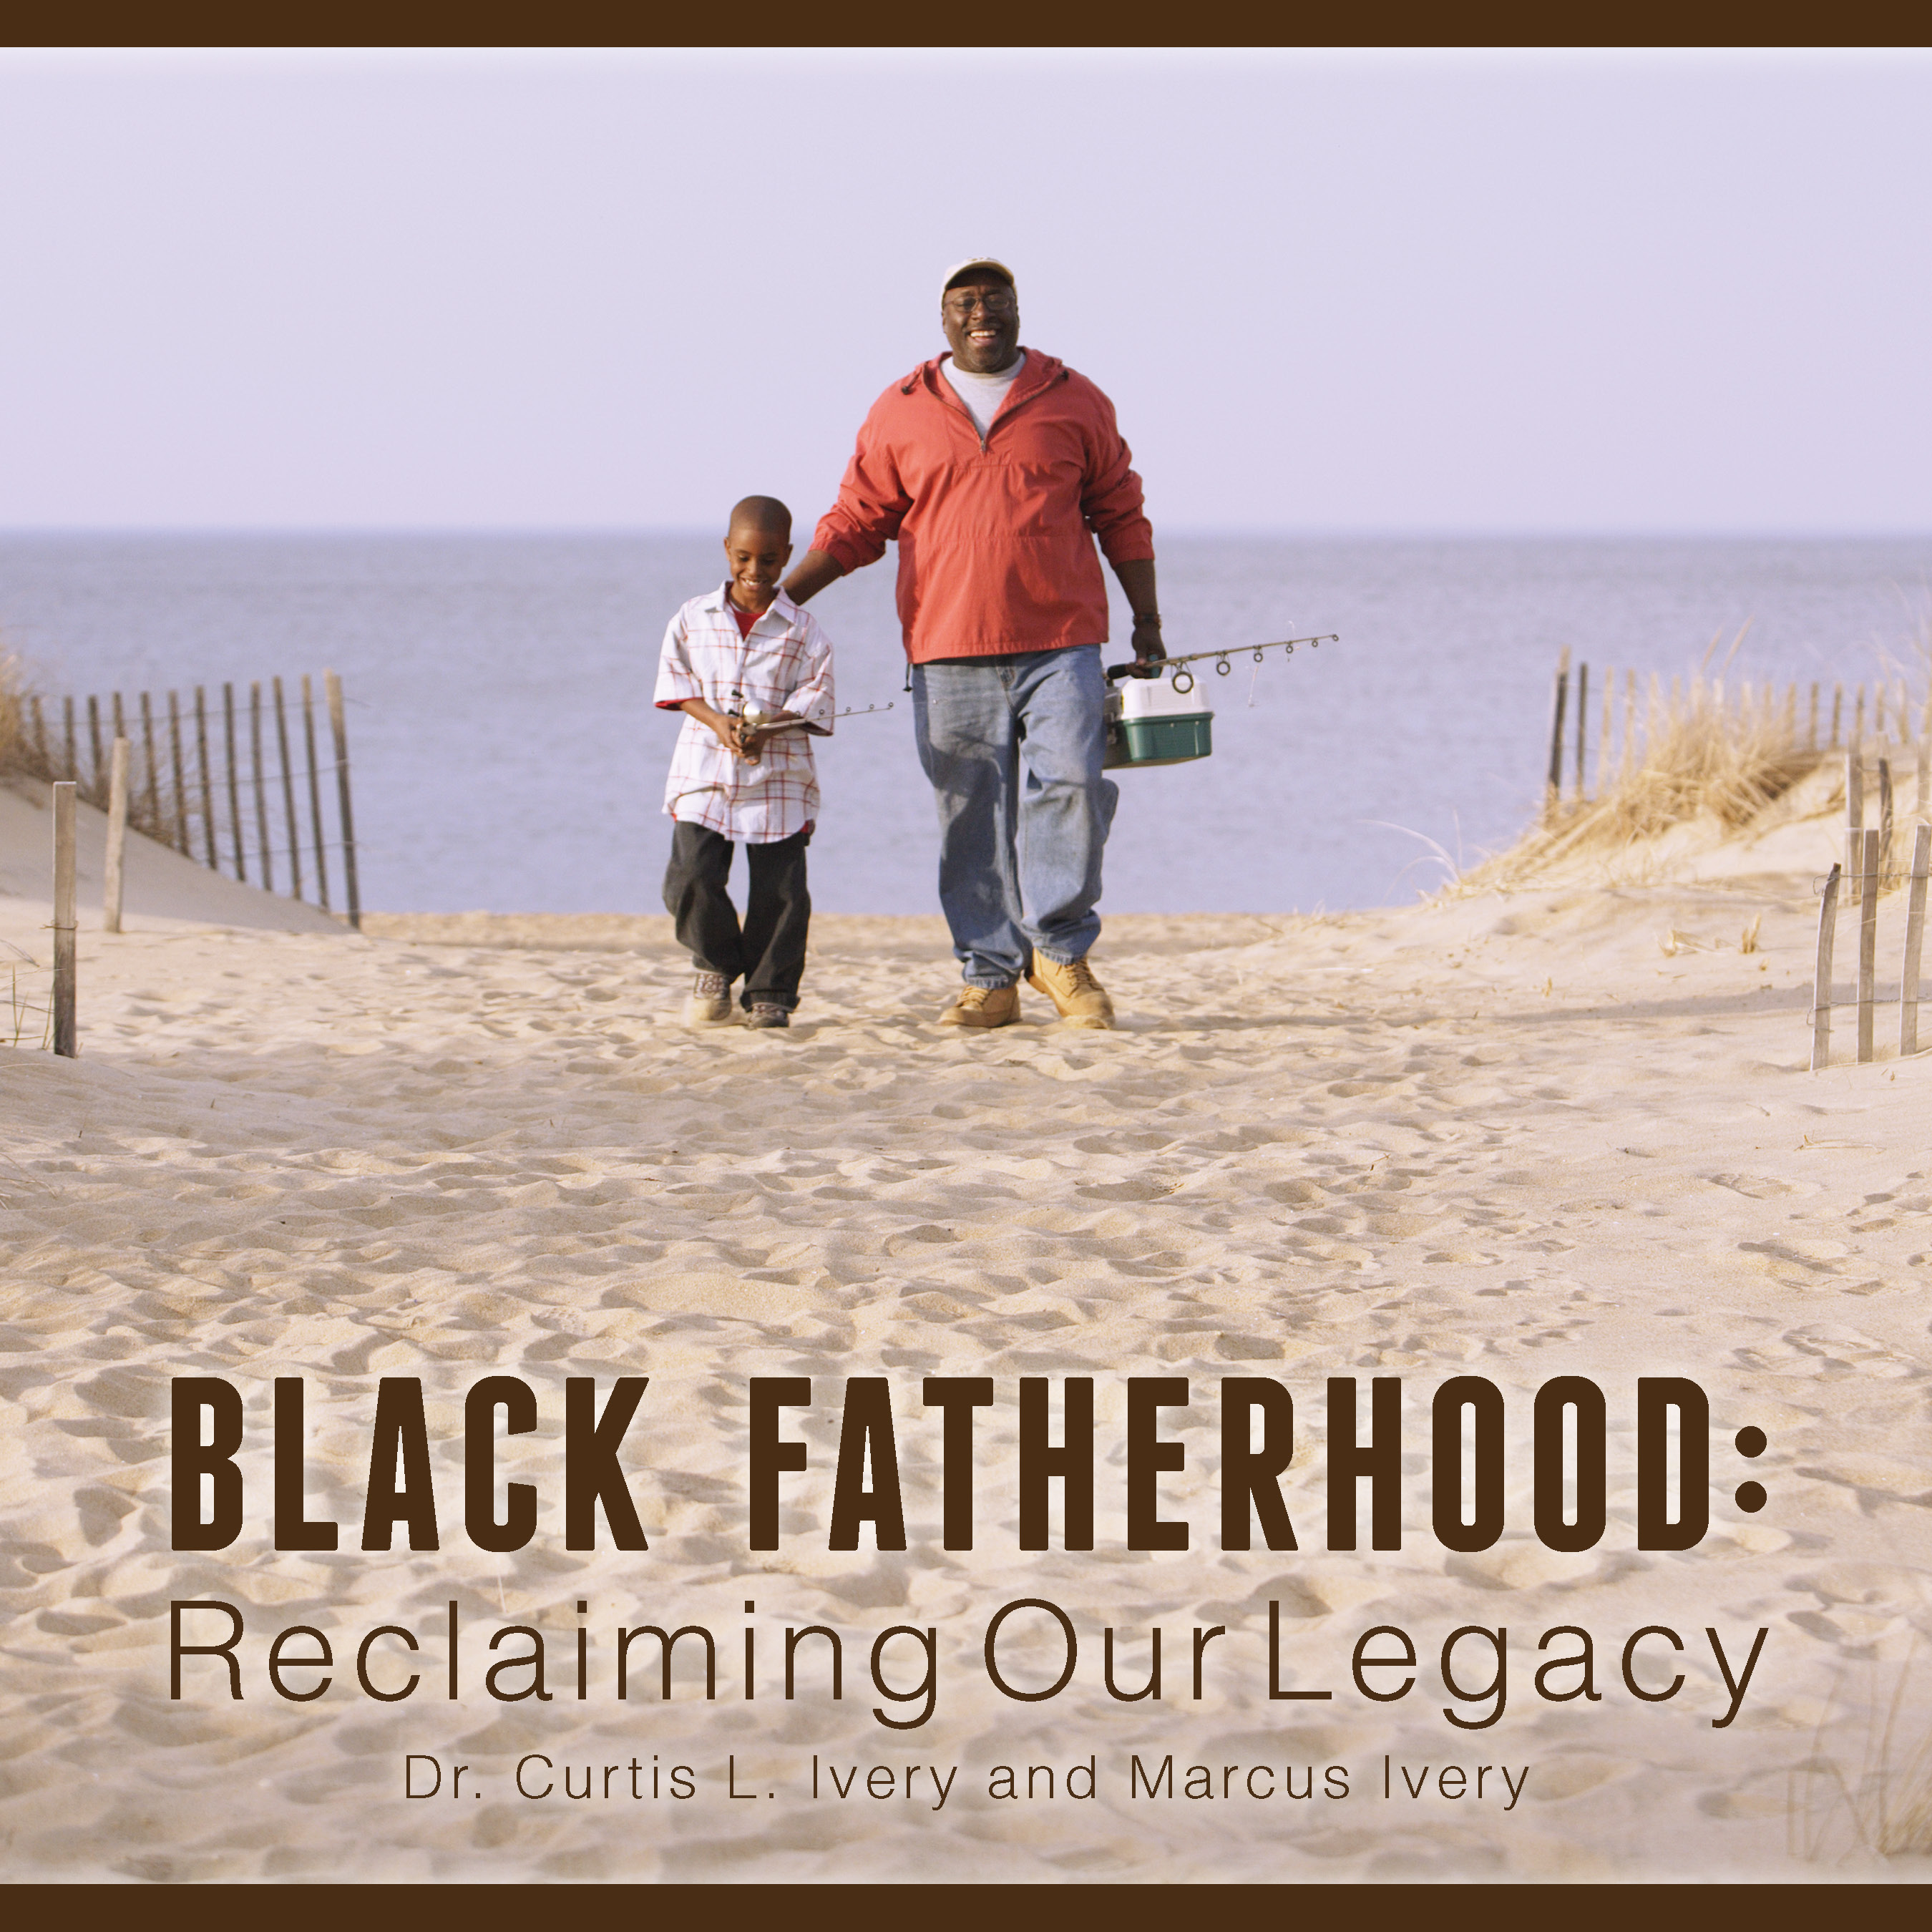 Black Fatherhood